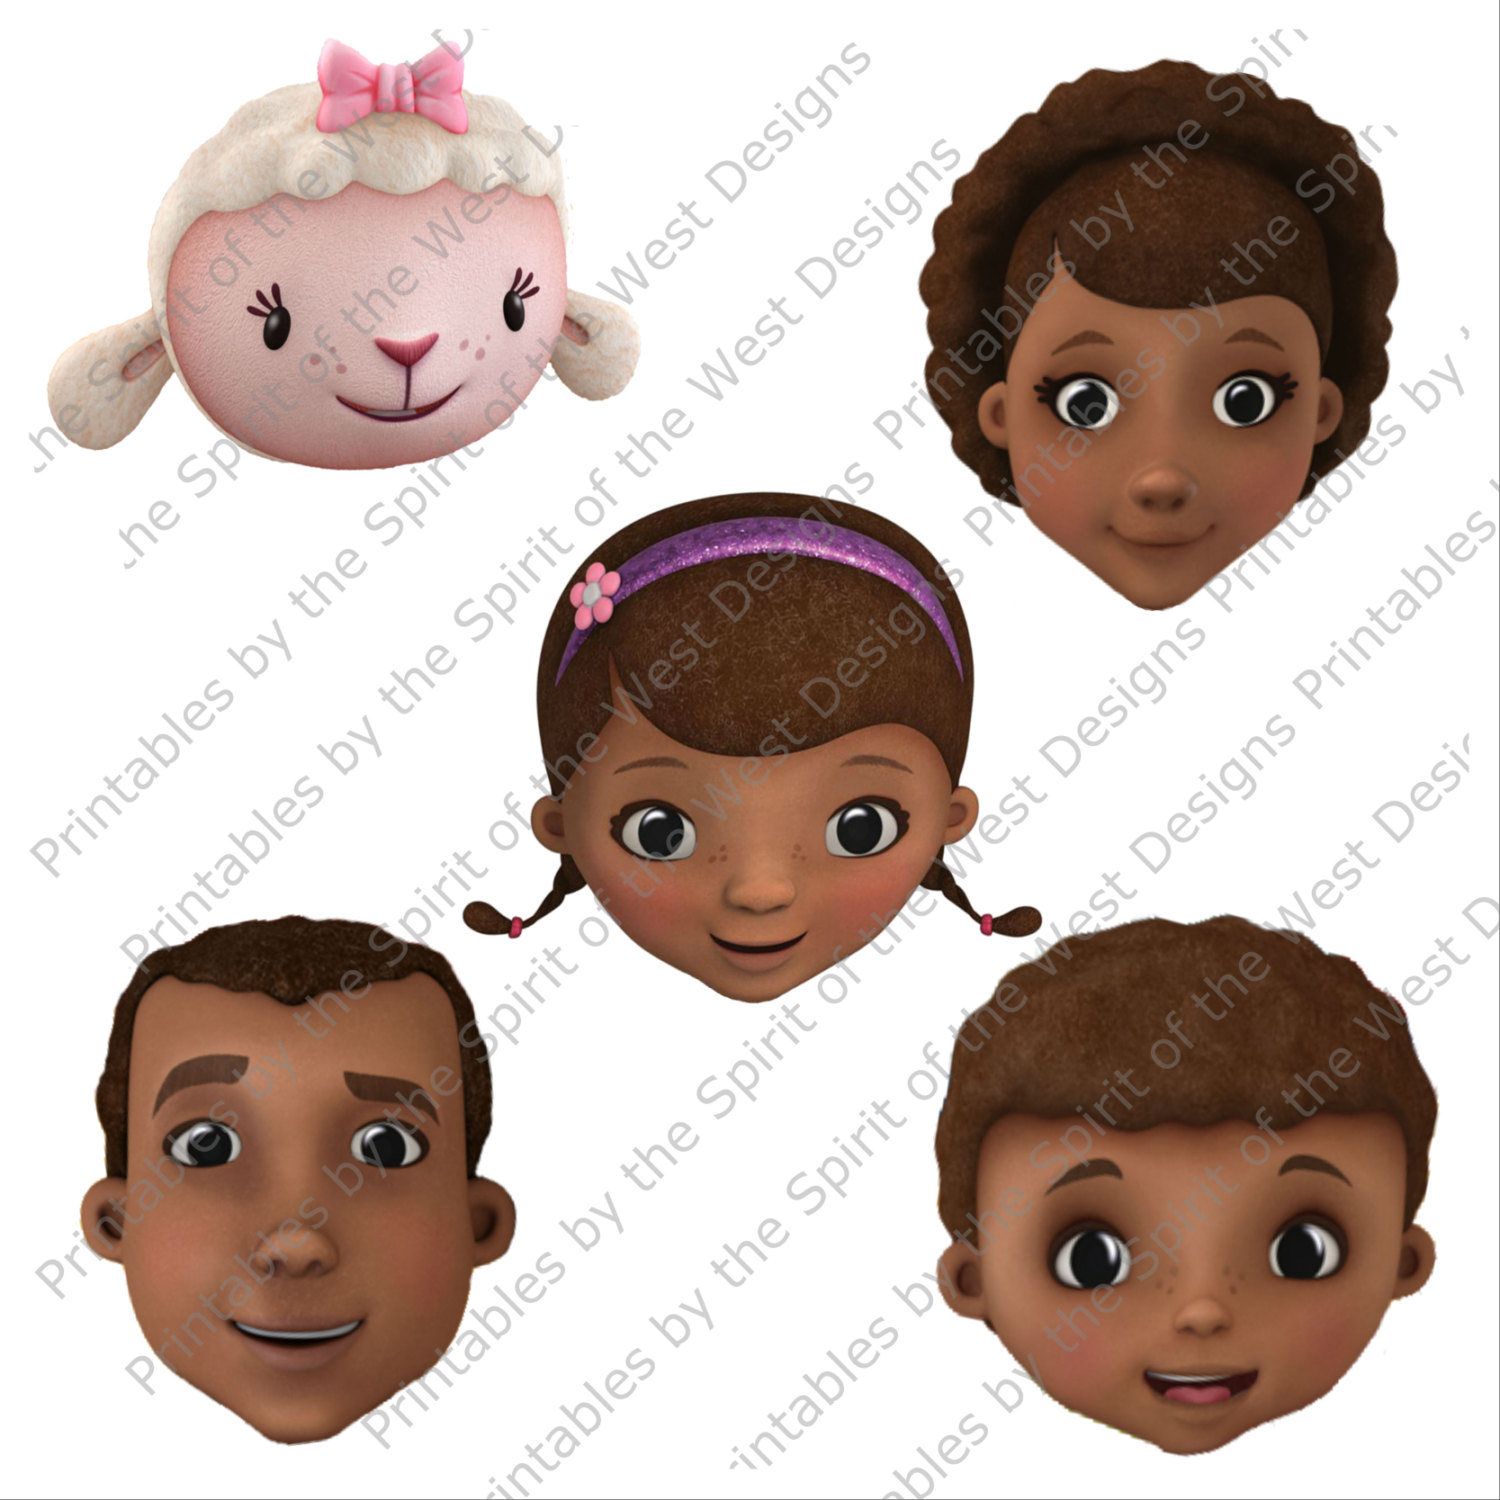 Doc mcstuffins face clipart graphic royalty free Doc mcstuffins face clipart - ClipartFest graphic royalty free